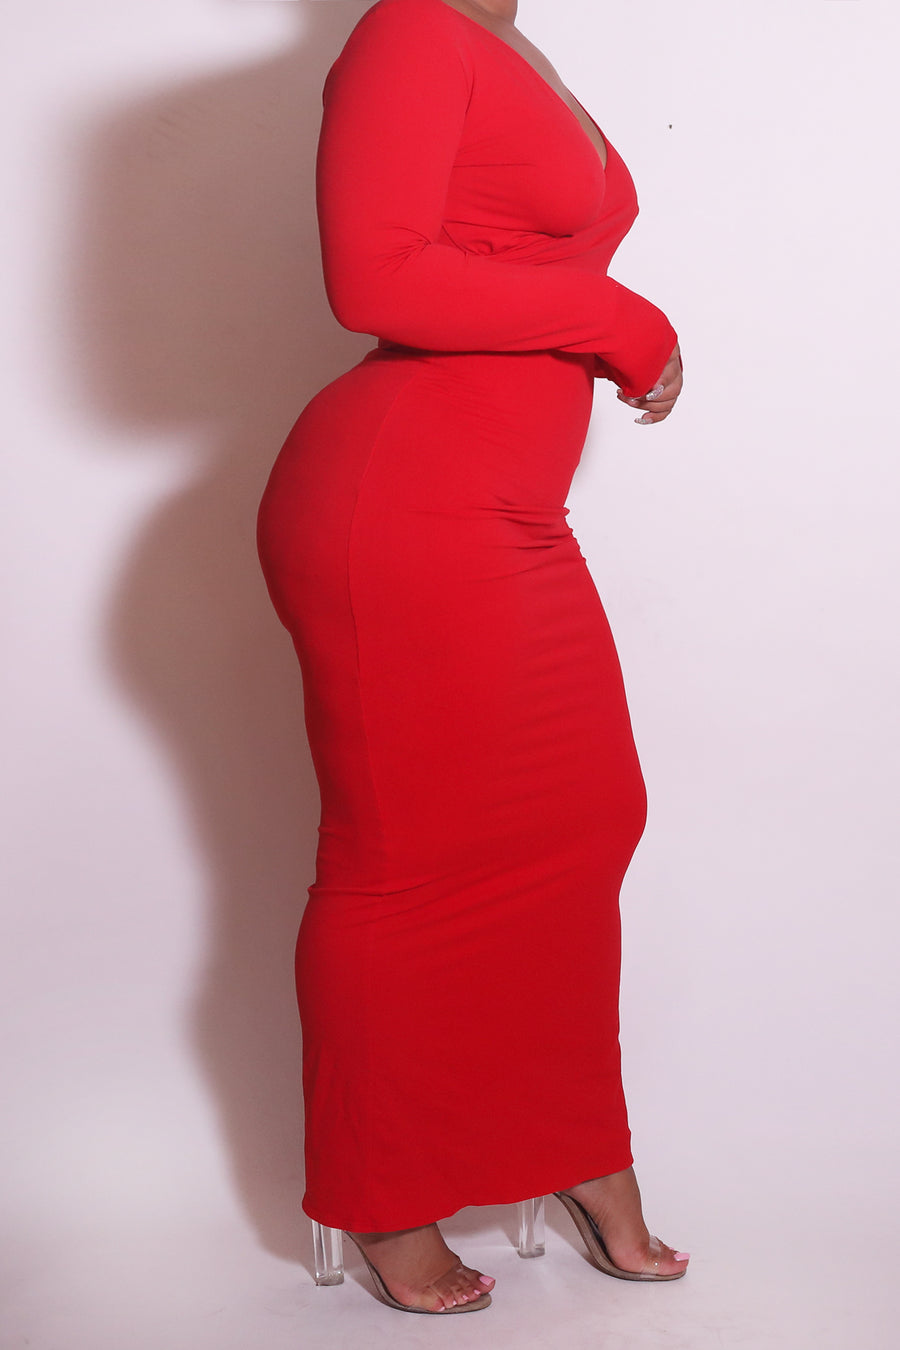 The Wrap Bodycon Maxi Dress in Red - Babes And Felines | Specializing in Fashionable Staple Pieces for Every Shape and Size